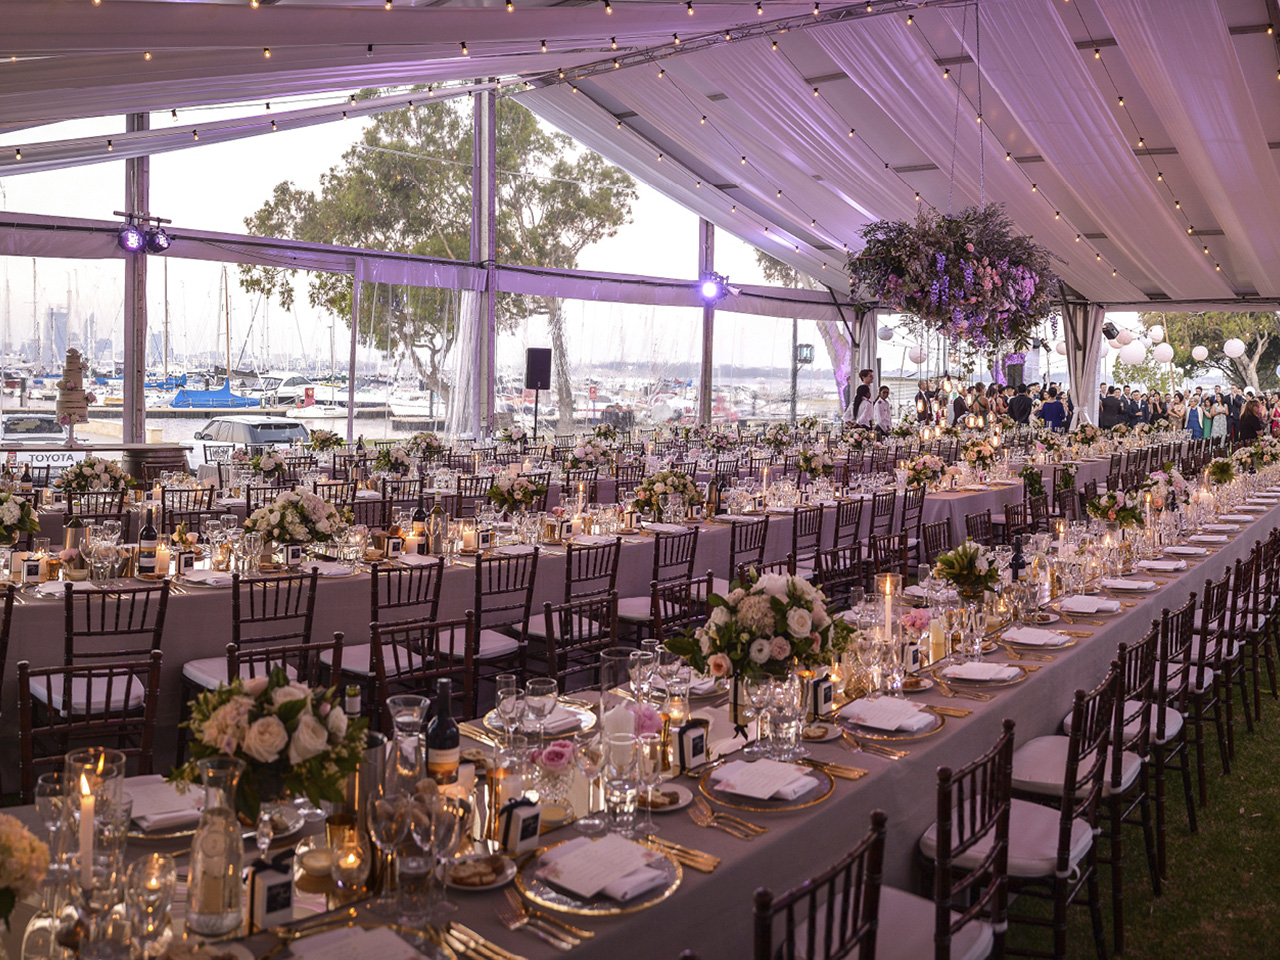 Long Tables with Chairs, Centerpieces, String Lights, Hanging Flower And Ceiling Drapping